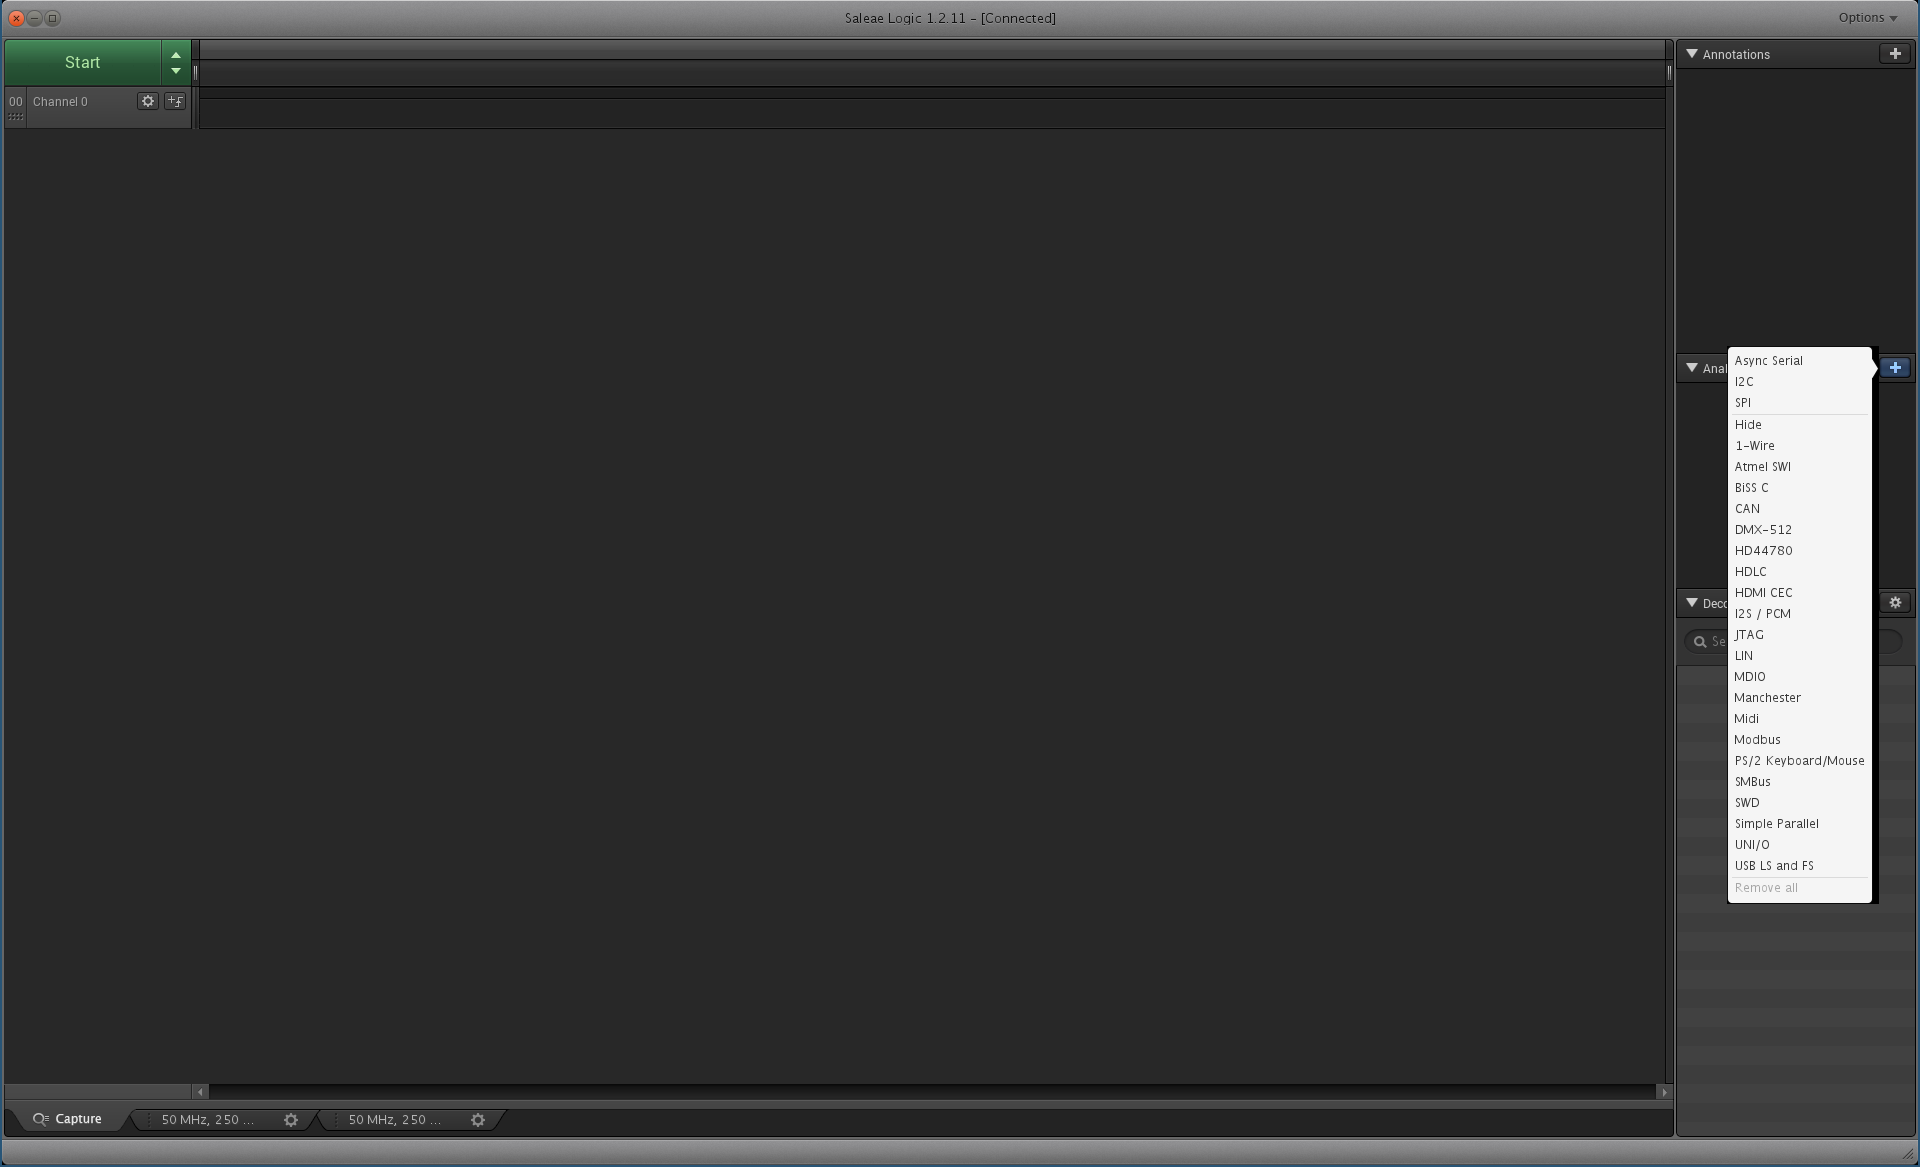 Using the Saleae Logic Pro 8 to debug a CAN bus   seL4 docs